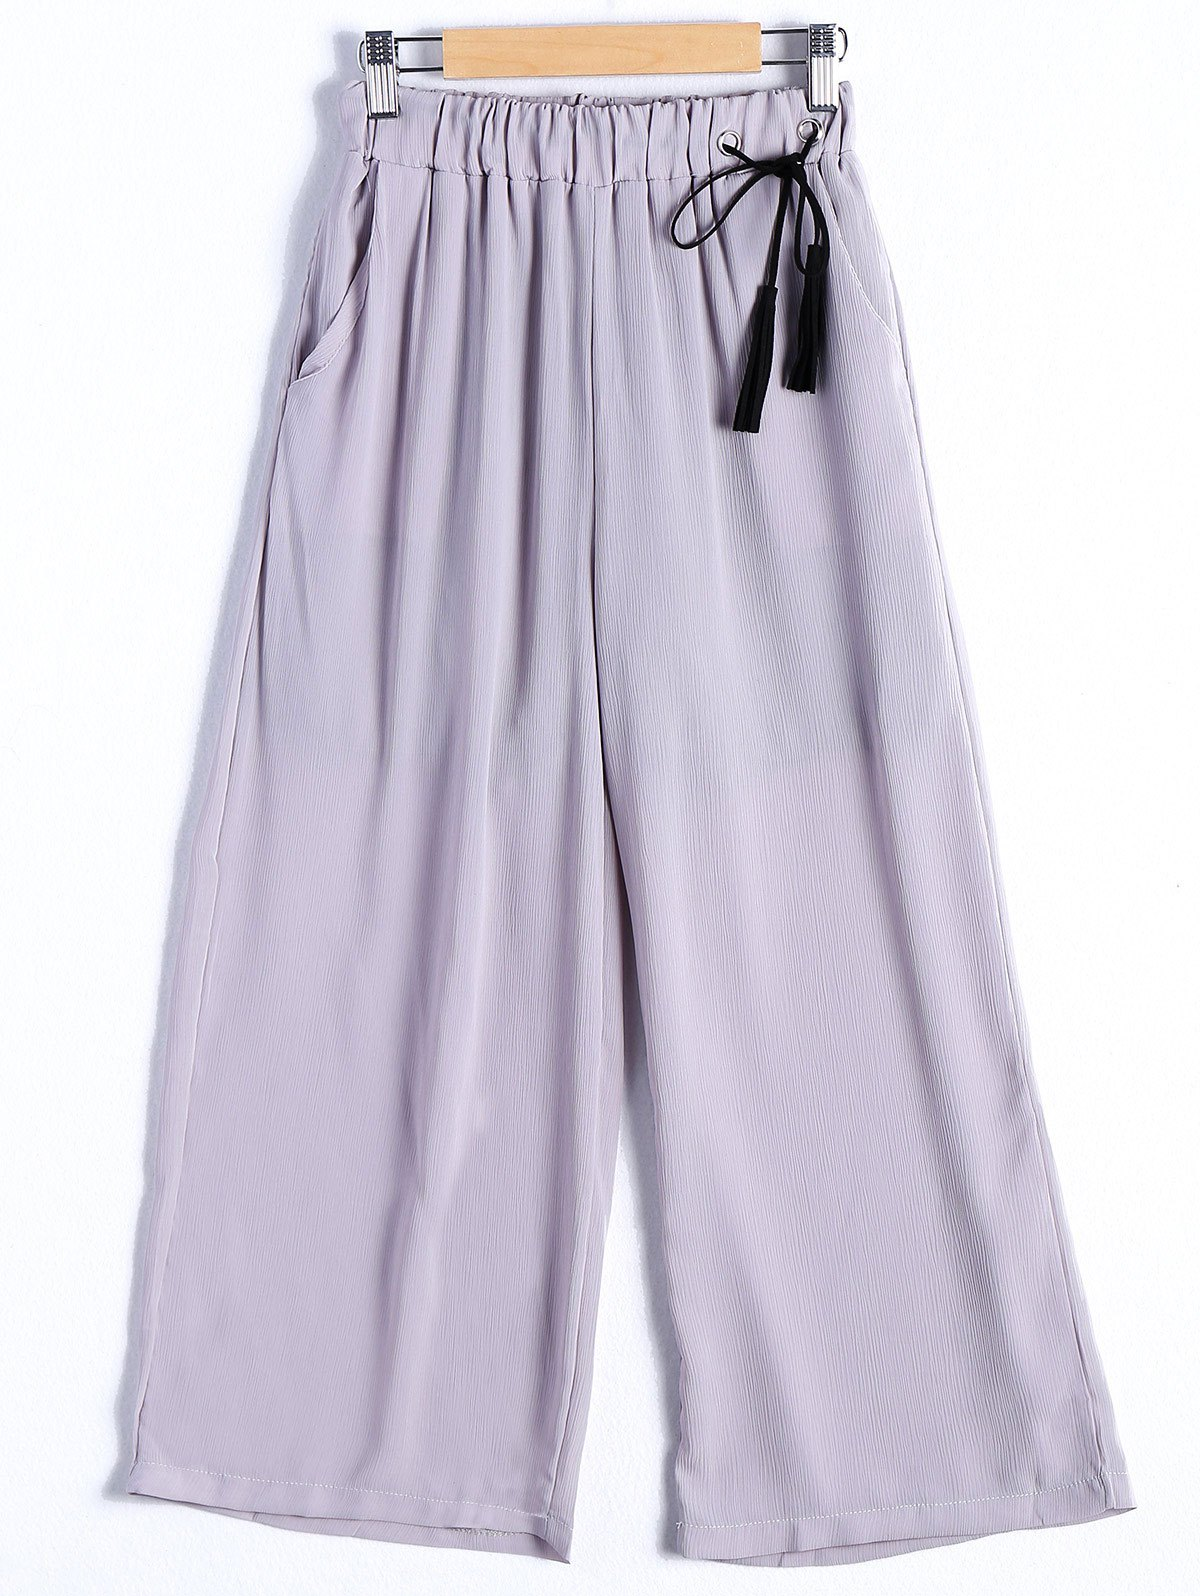 Casual Women's Chiffon Tie Waist Wide Leg Pants - LIGHT GRAY ONE SIZE(FIT SIZE XS TO M)